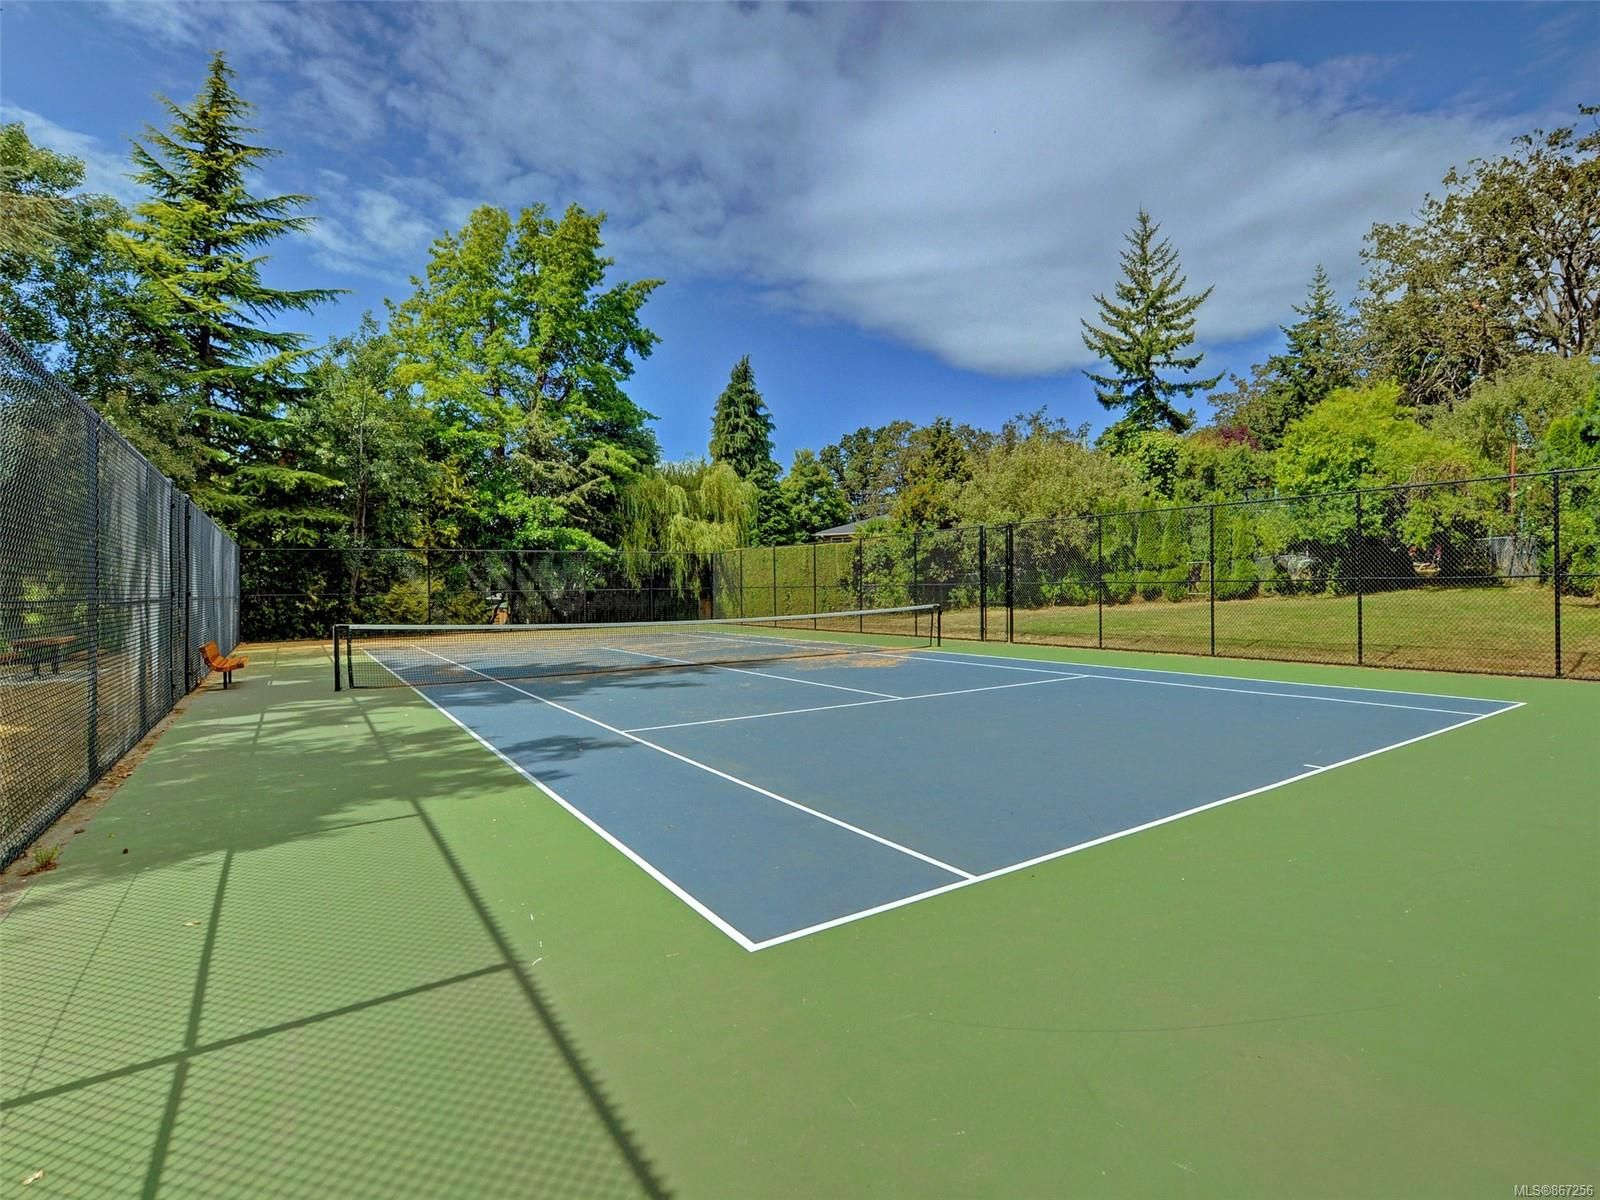 Photo 23: Photos: 5 869 Swan St in : SE Swan Lake Row/Townhouse for sale (Saanich East)  : MLS®# 867256